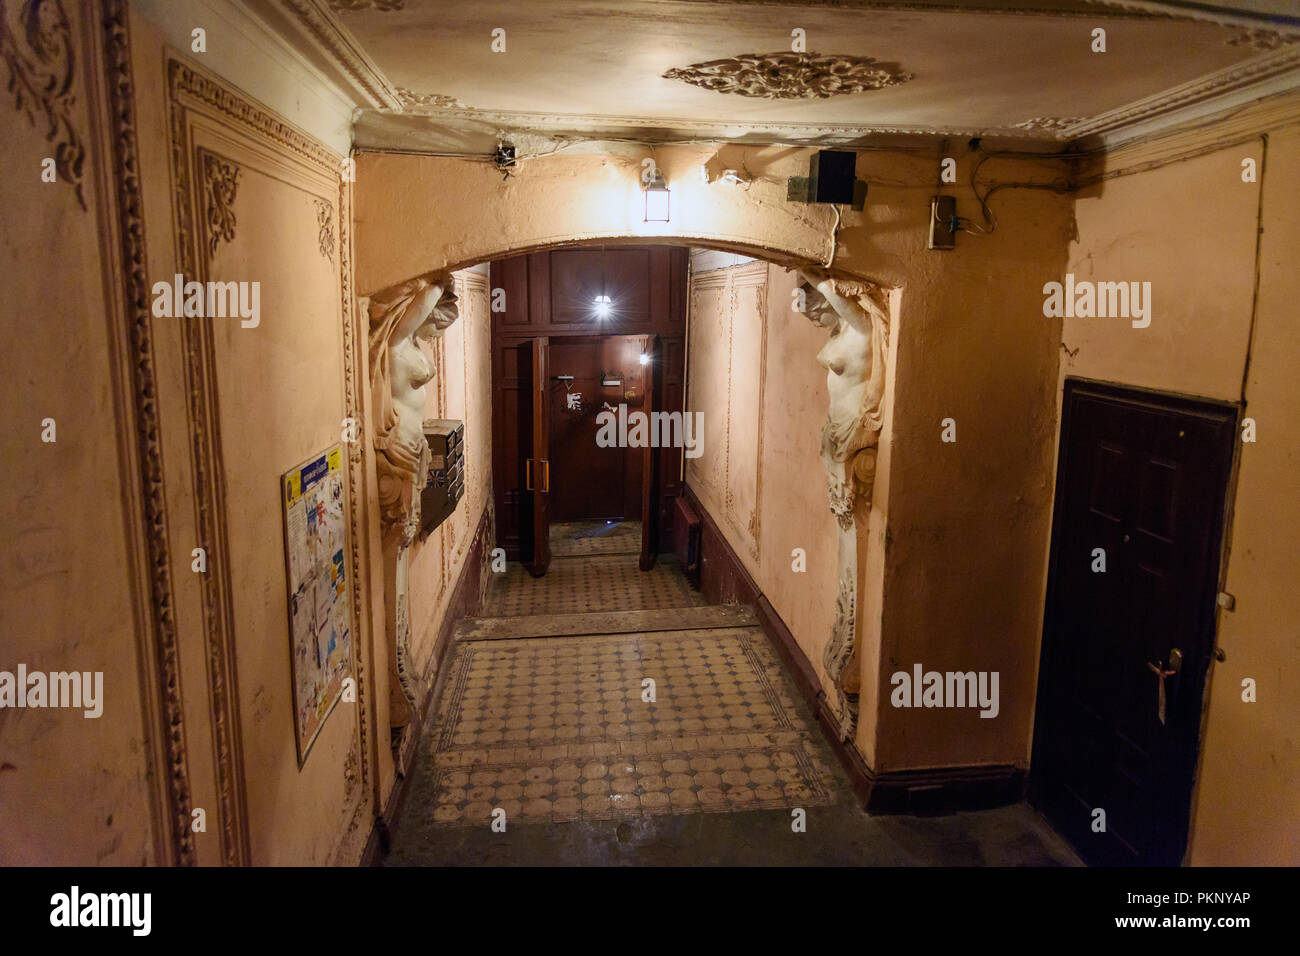 Saint Petersburg, Russia - January 22, 2018: Grand entrance of profitable house in the centre of city - Stock Image